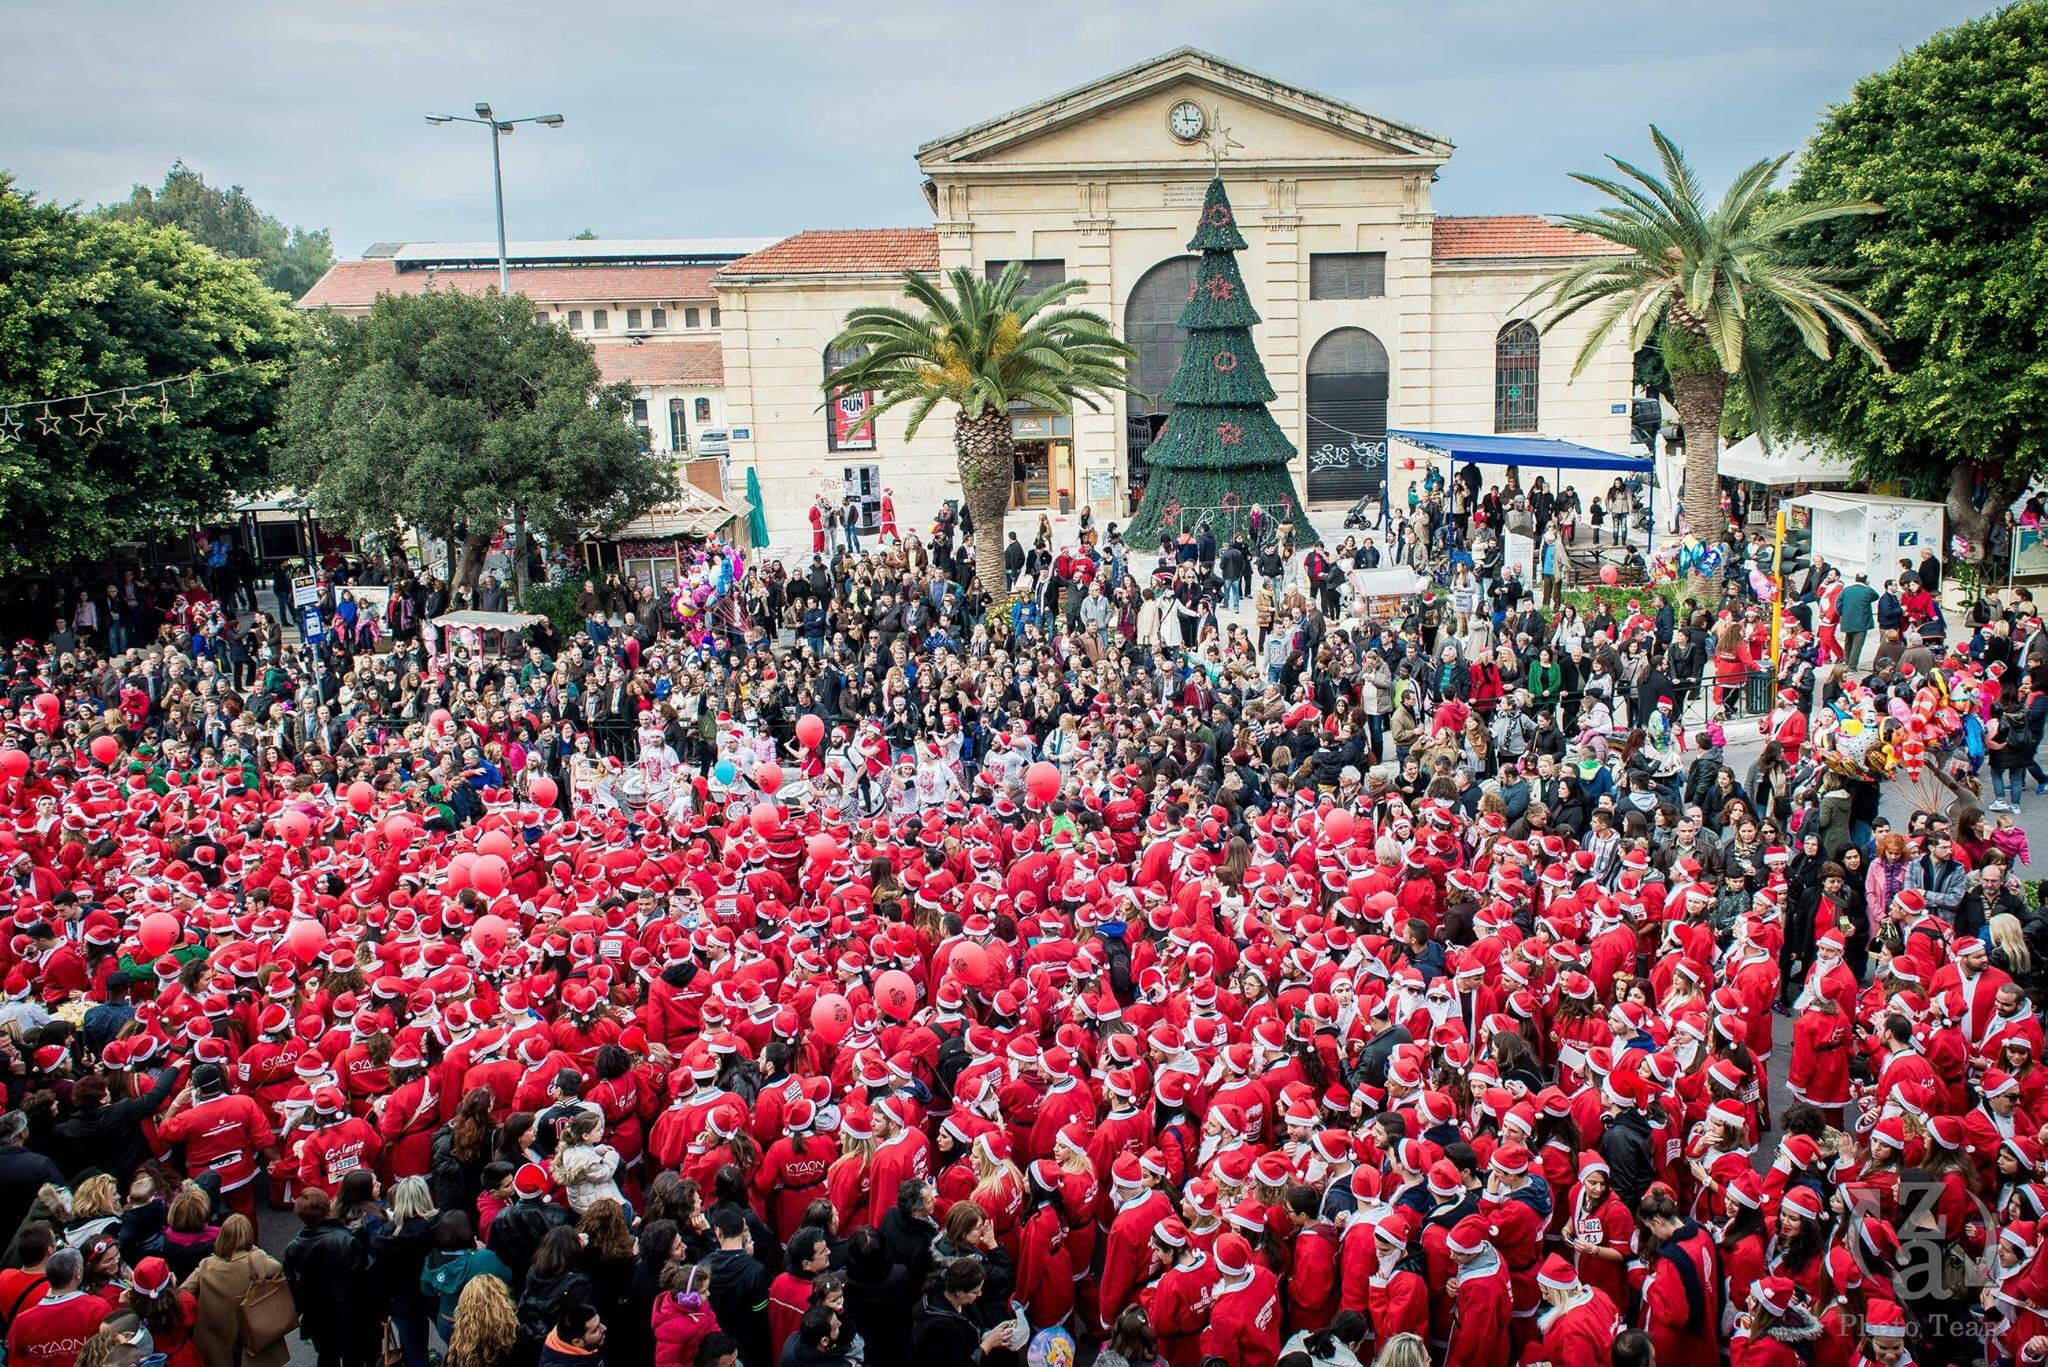 Men dressed like Santa Claus preparing for the Santa run in Chania, Crete.